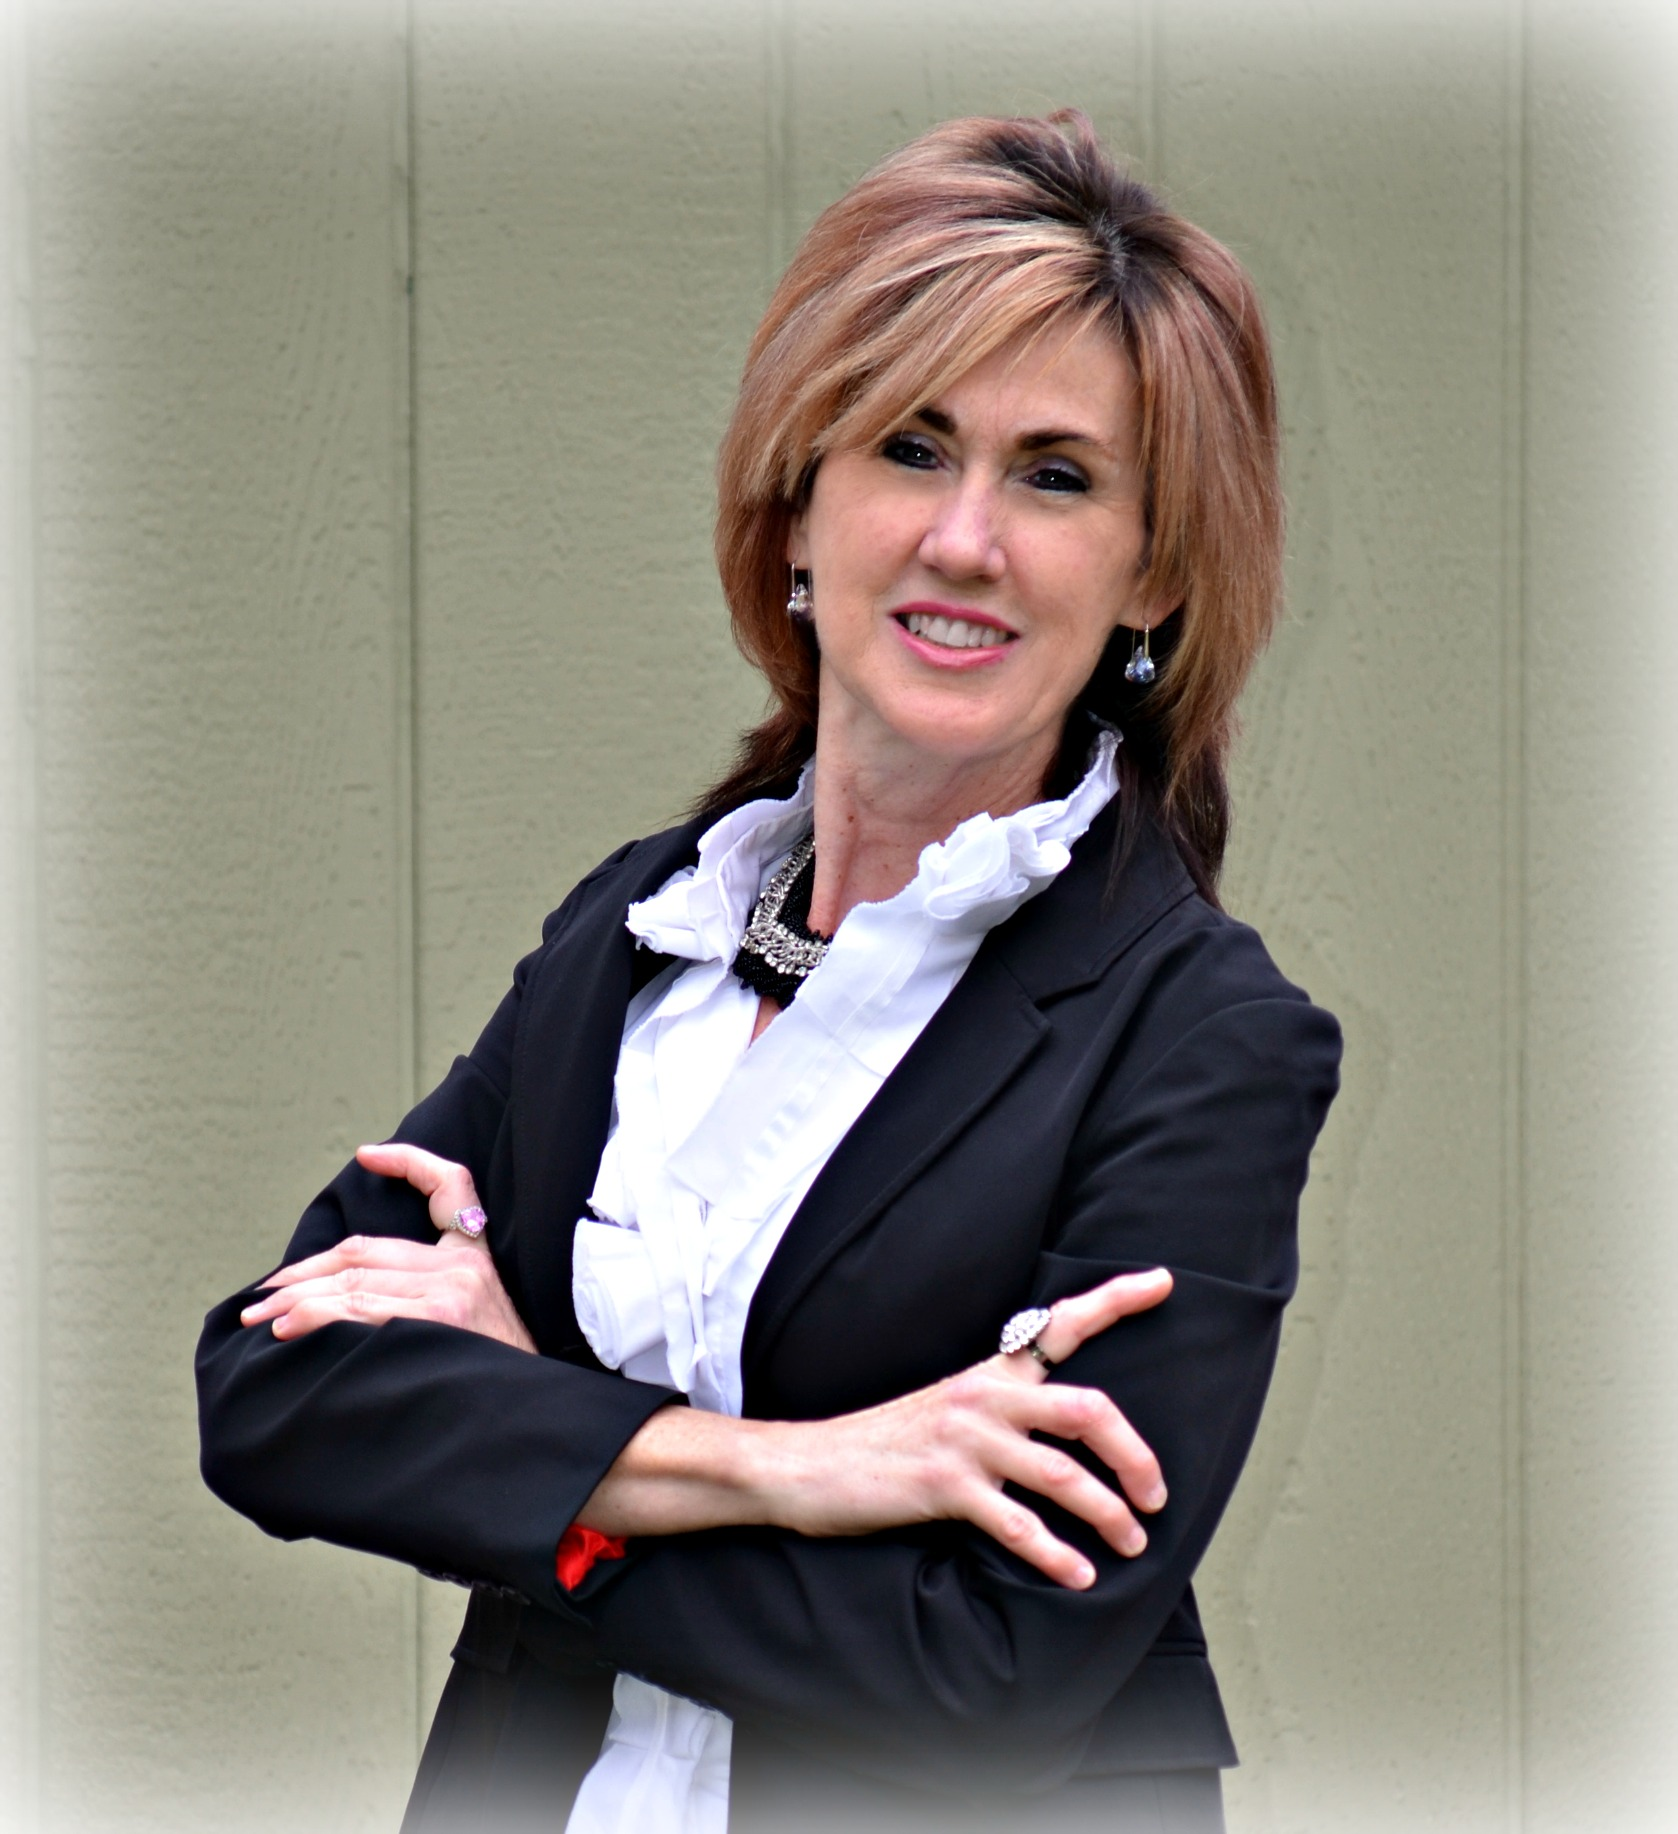 Barbara Valentino of AM Realty Advisors